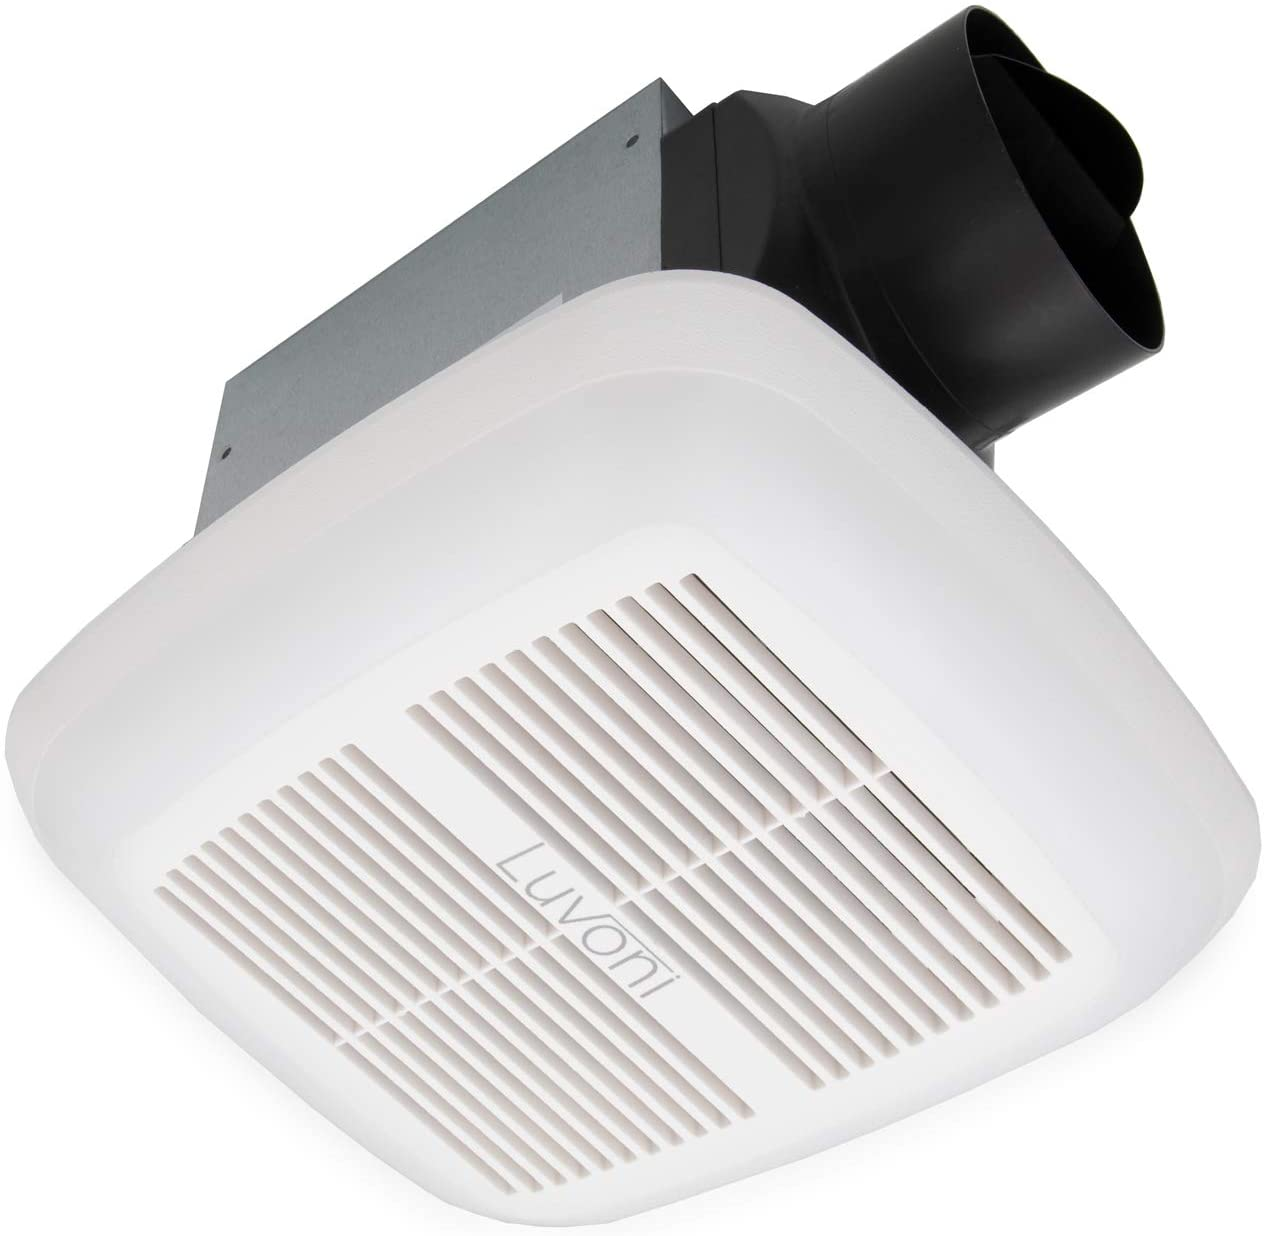 Luvoni 80 CFM Bathroom Exhaust and Ventilation Fan with Light and Humidity Sensor, 1.5 Sones Quiet Operation, Ceiling Fan with Built in LED Light, White Grill, by Maxxima